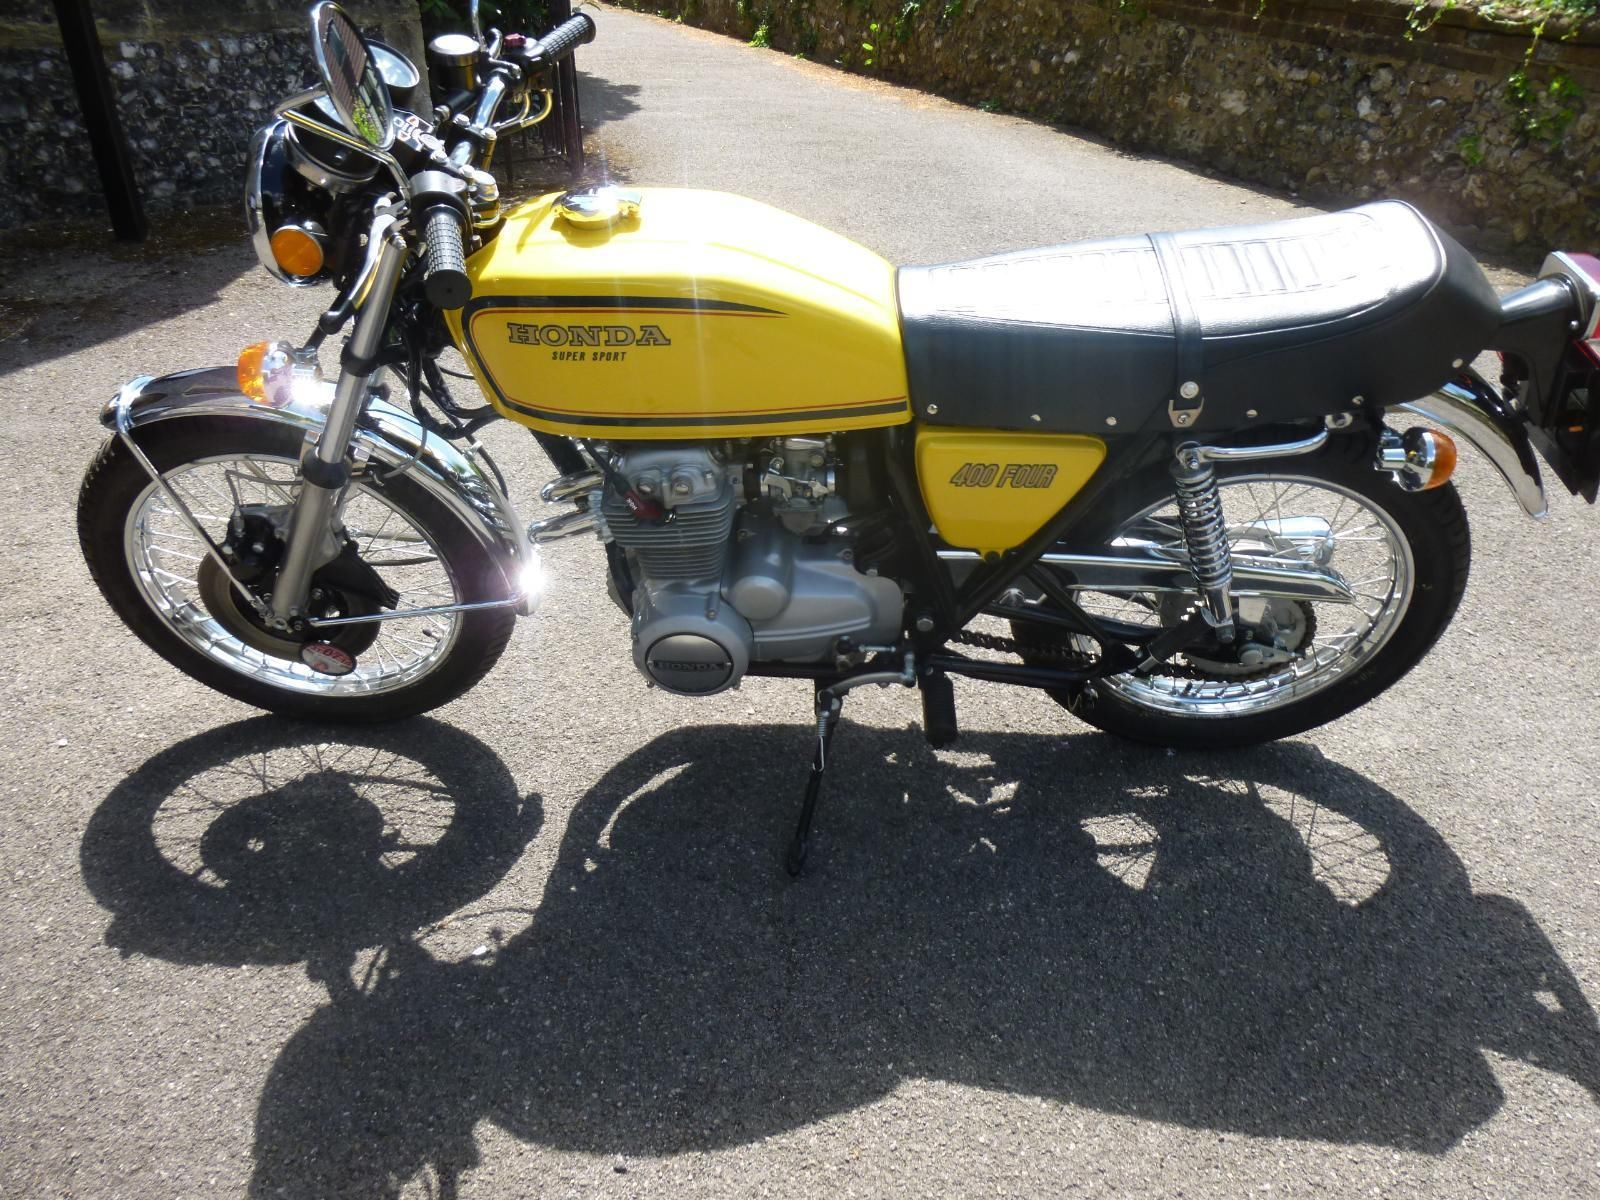 Honda CB400/4 - 1976 - Tank and Side Panels, Chain Guard and Gas Tank.